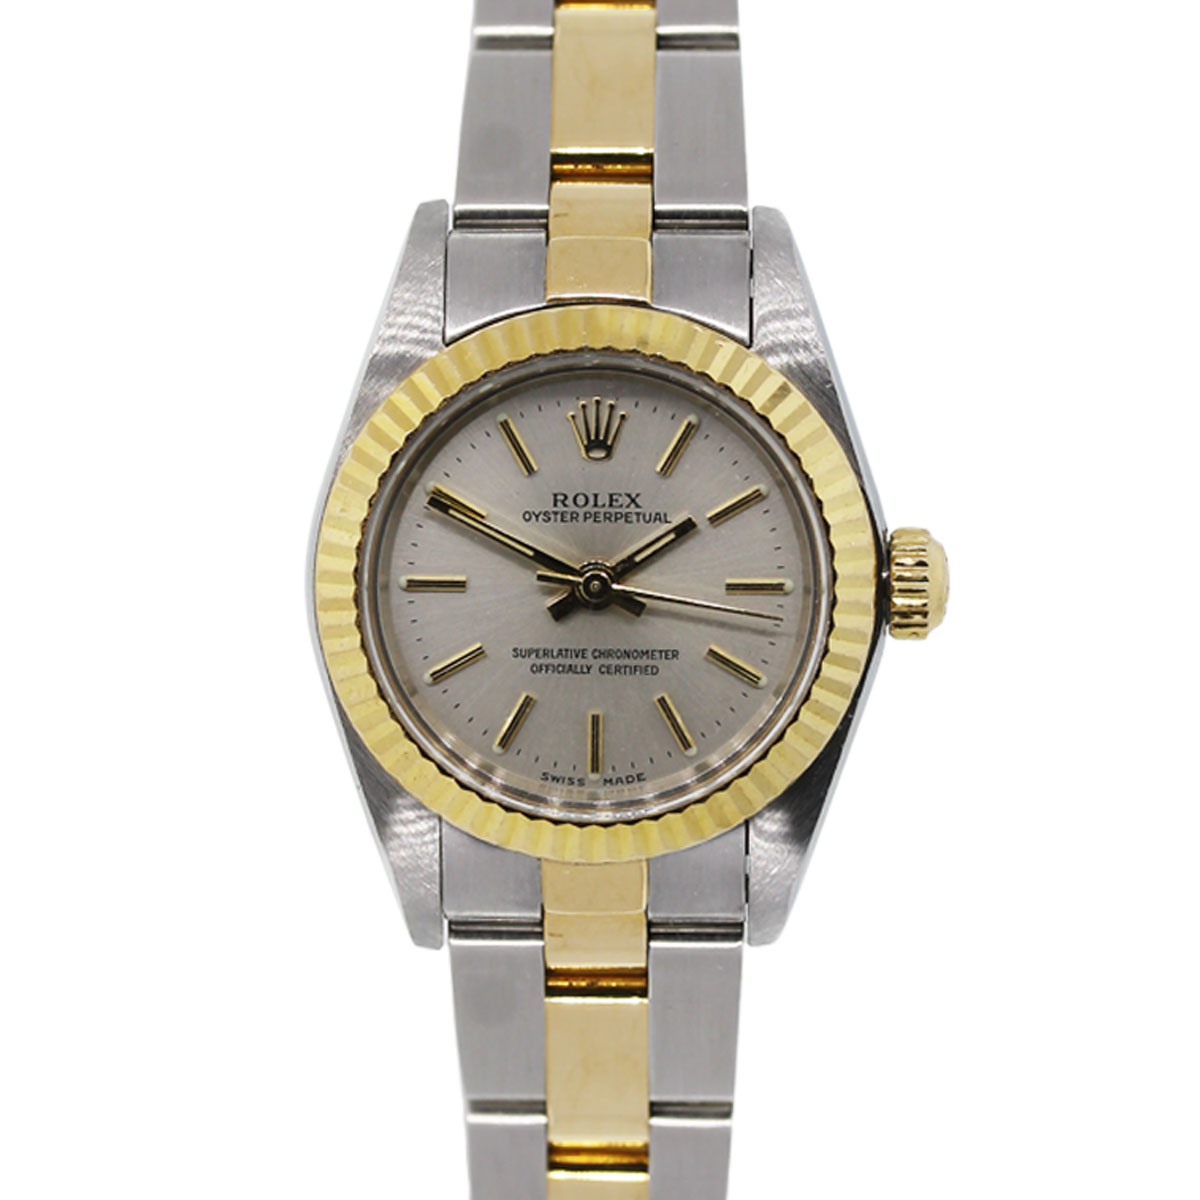 Rolex Oyster Perpetual 67193 Two Tone Gold Dial Ladies Watch